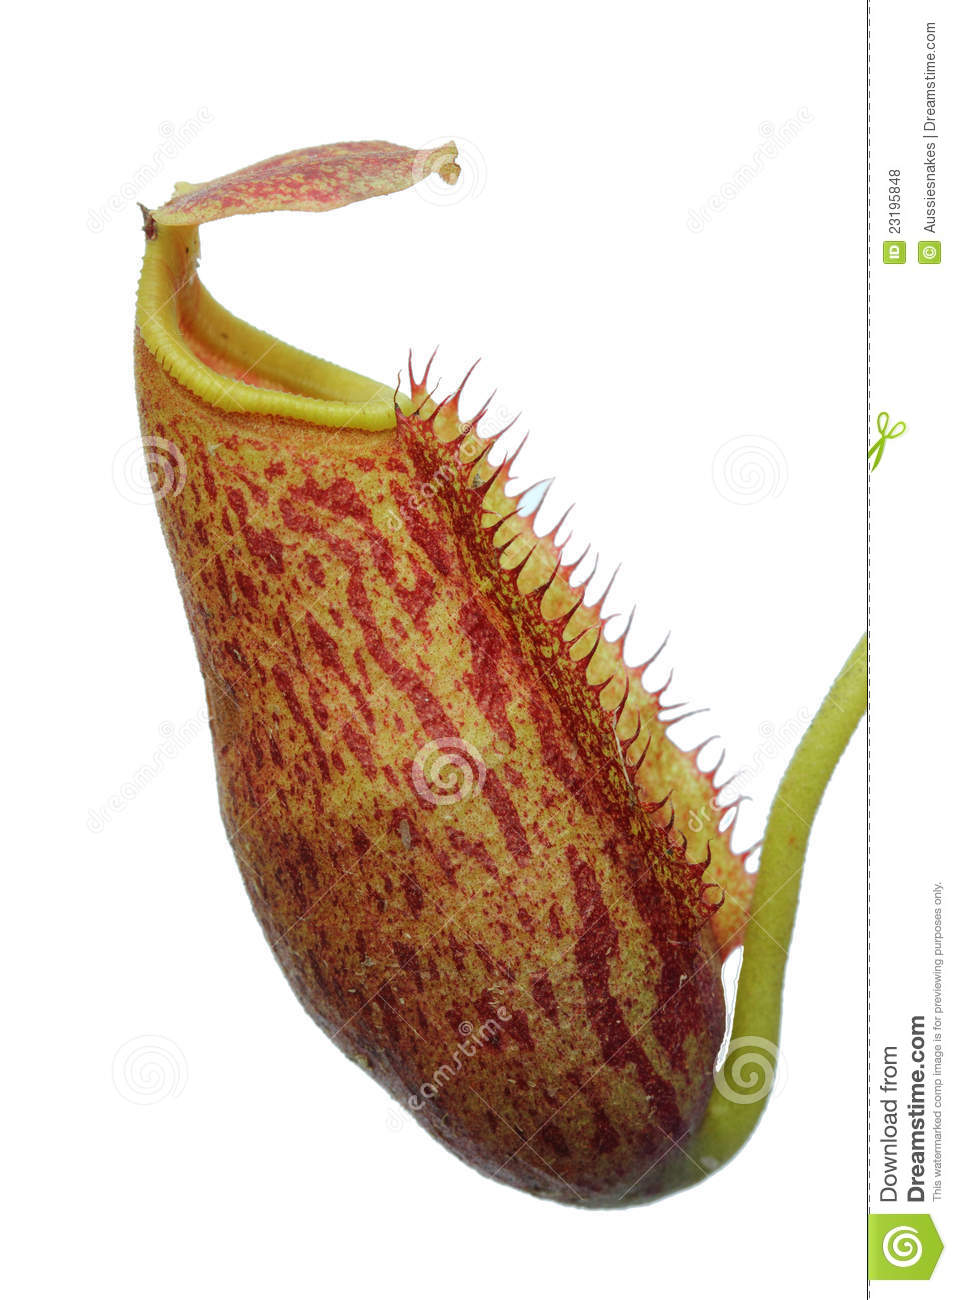 Isolated Nepenthes (pitcher plant)